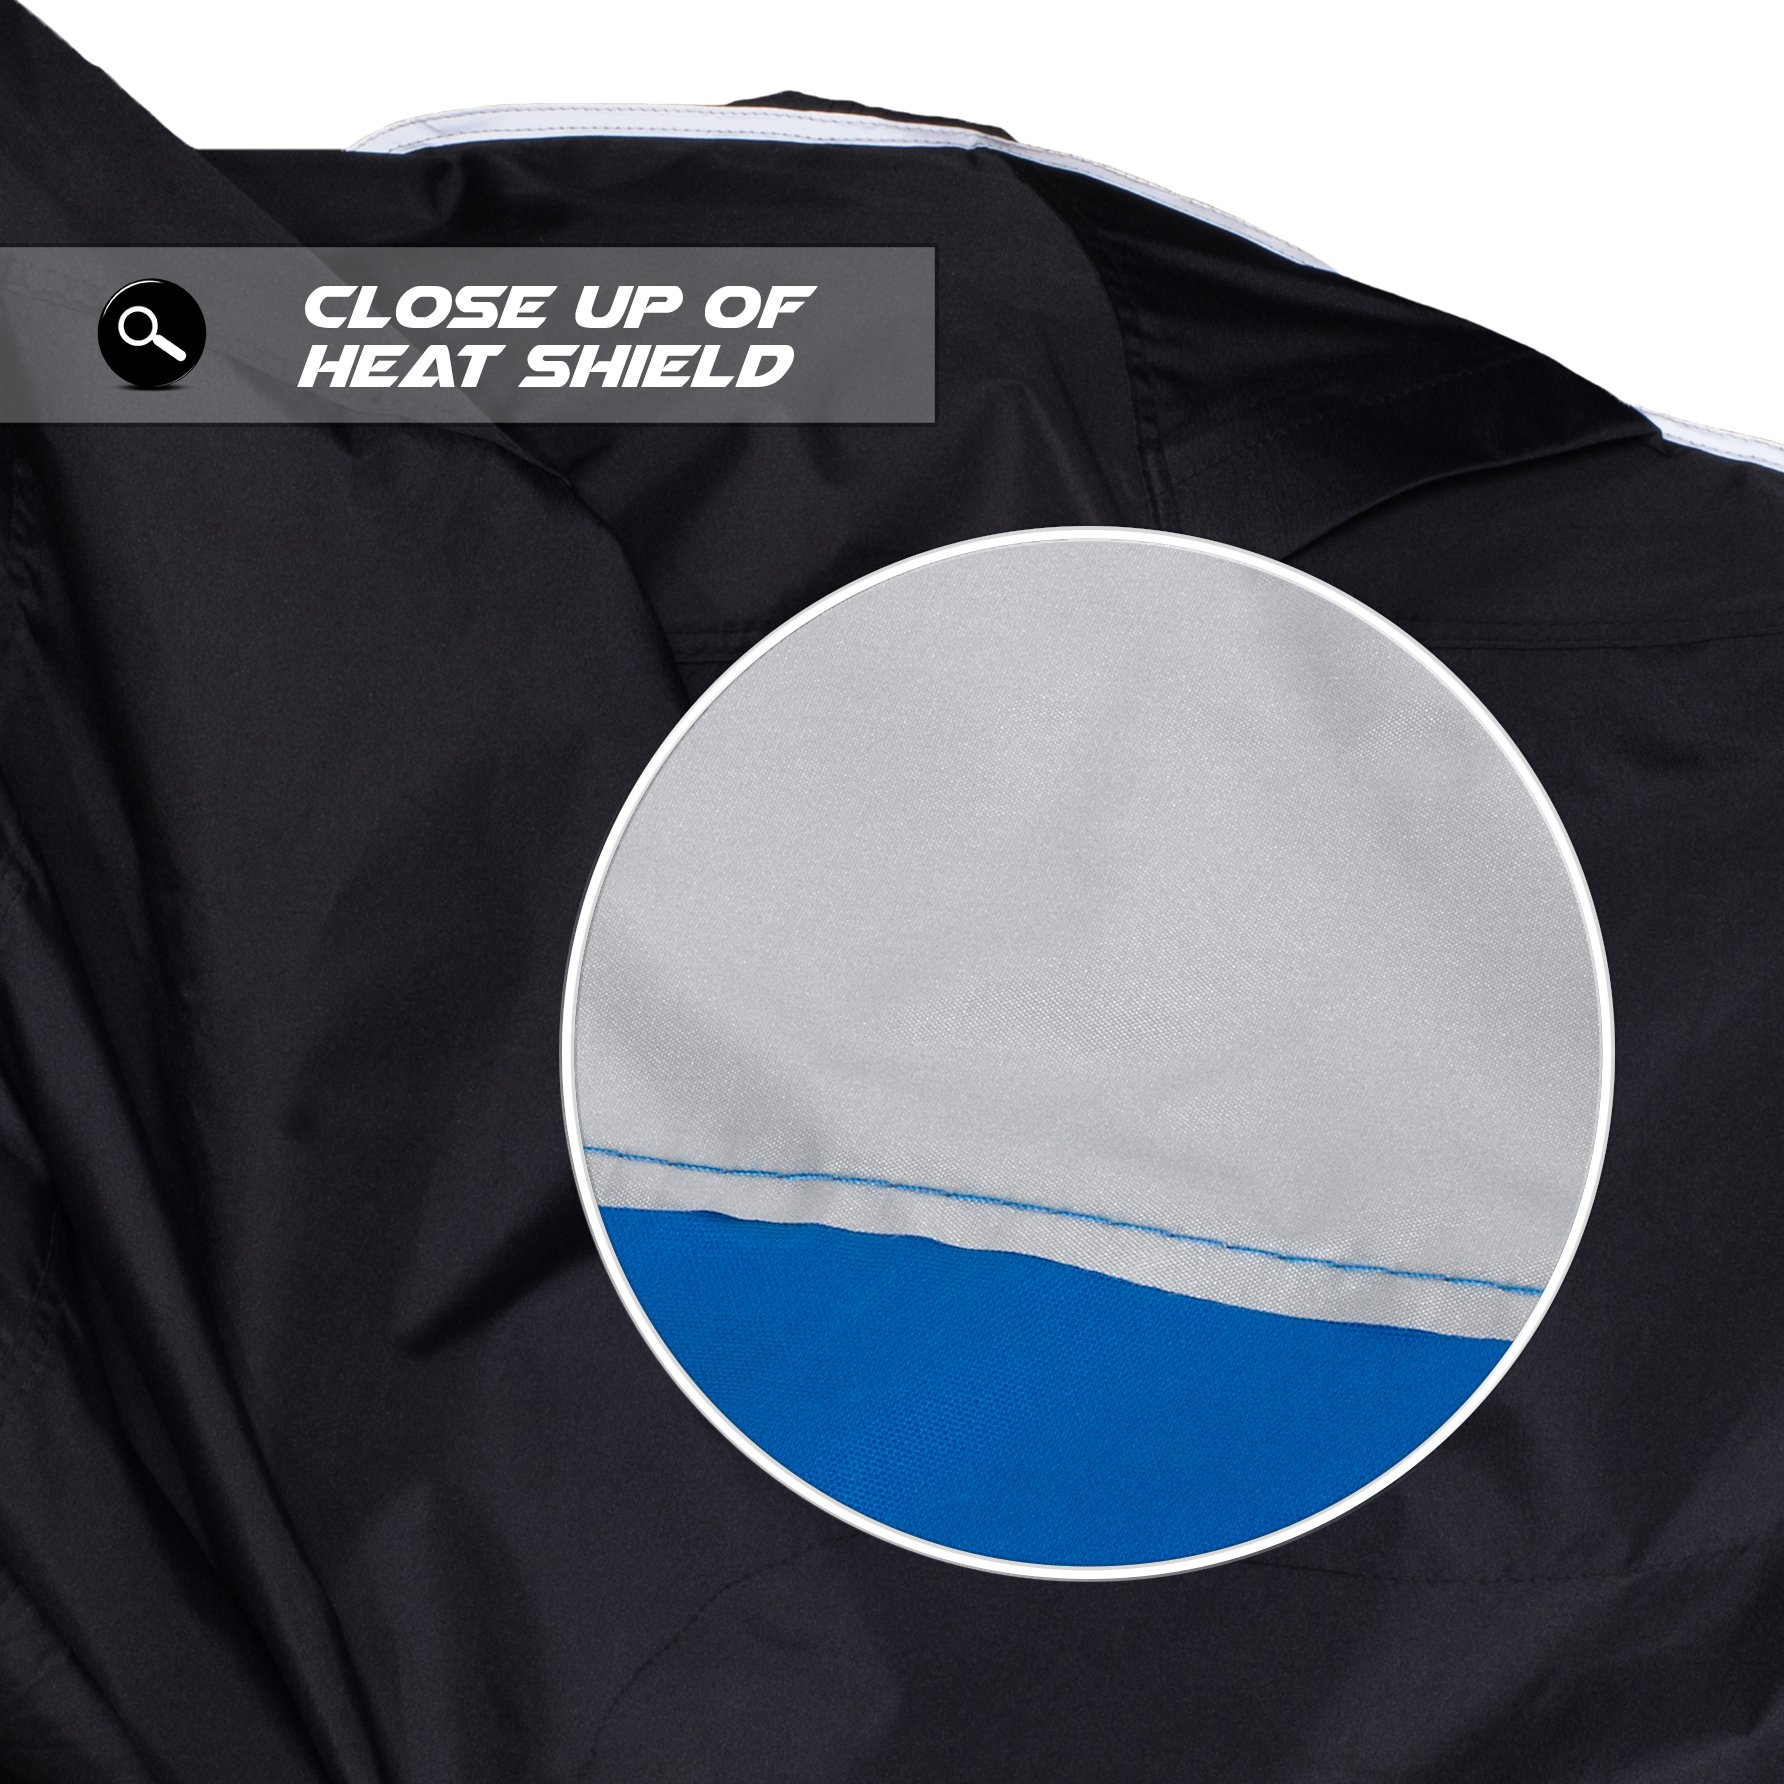 Premium Grade Weather Resistant Motorcycle Cover. Waterproof High Grade Polyester w/Soft Screen & Heat Resistant Shield Lockable fabric, Durable & Long Lasting. Sportbikes & Cruisers (XL, black) by Nuzari (Image #9)